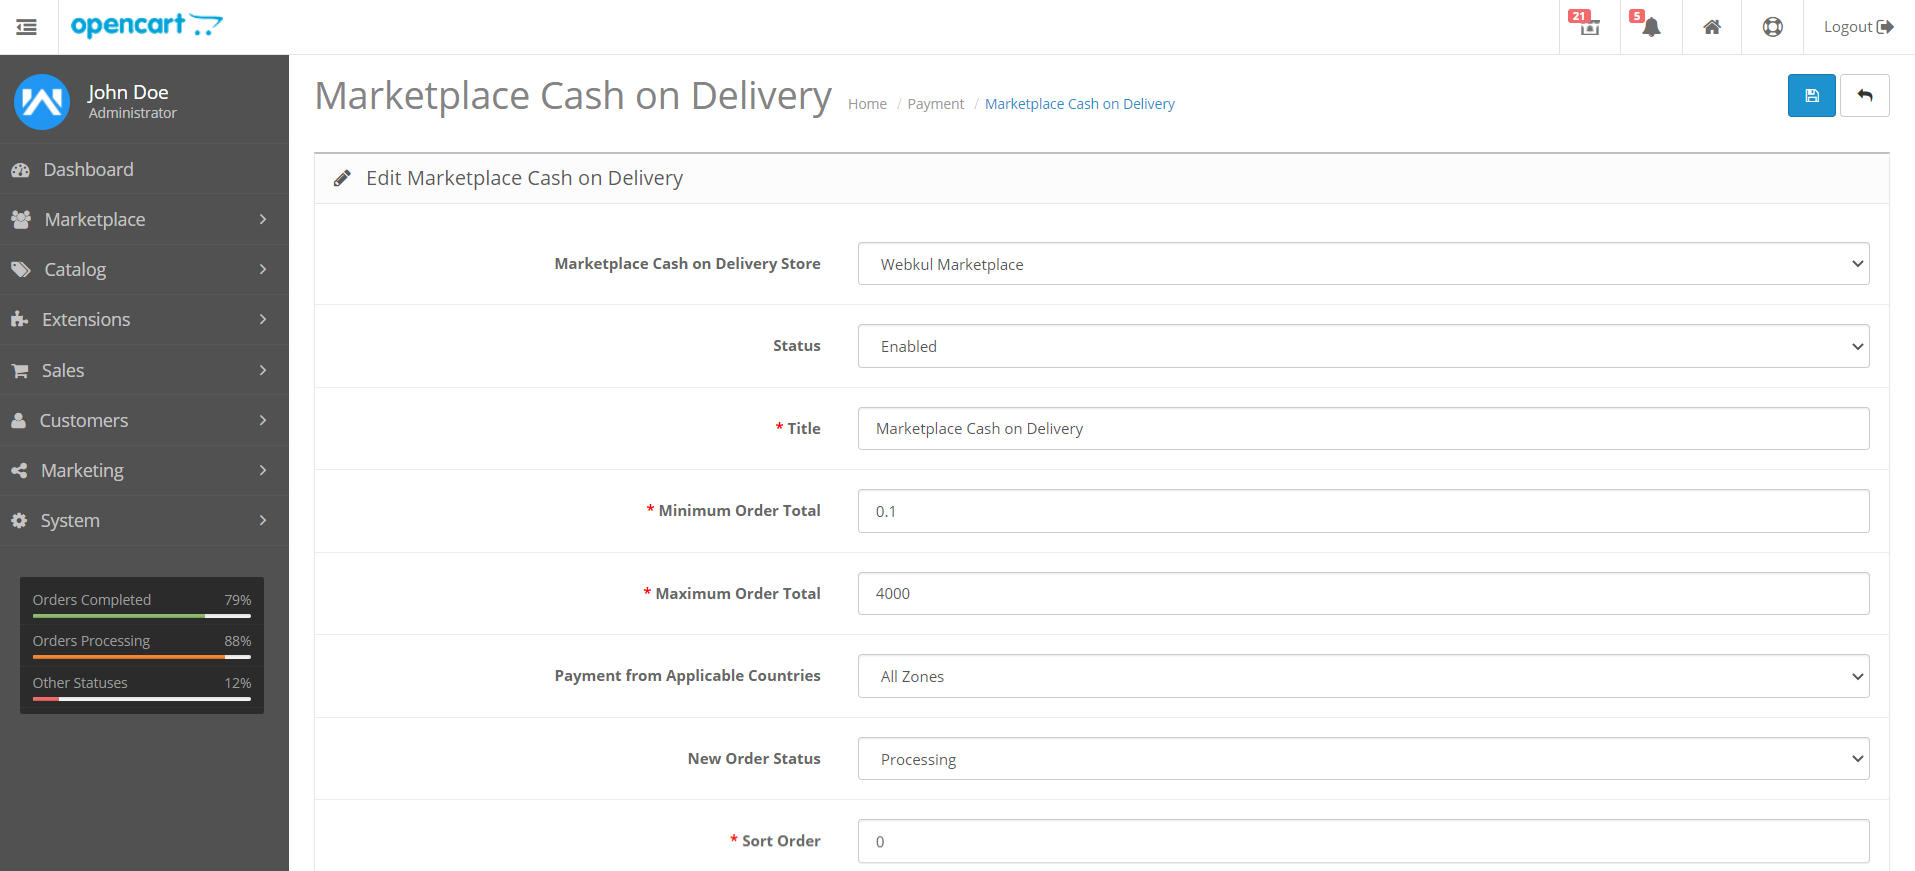 Marketplace-Cash-on-Delivery-1